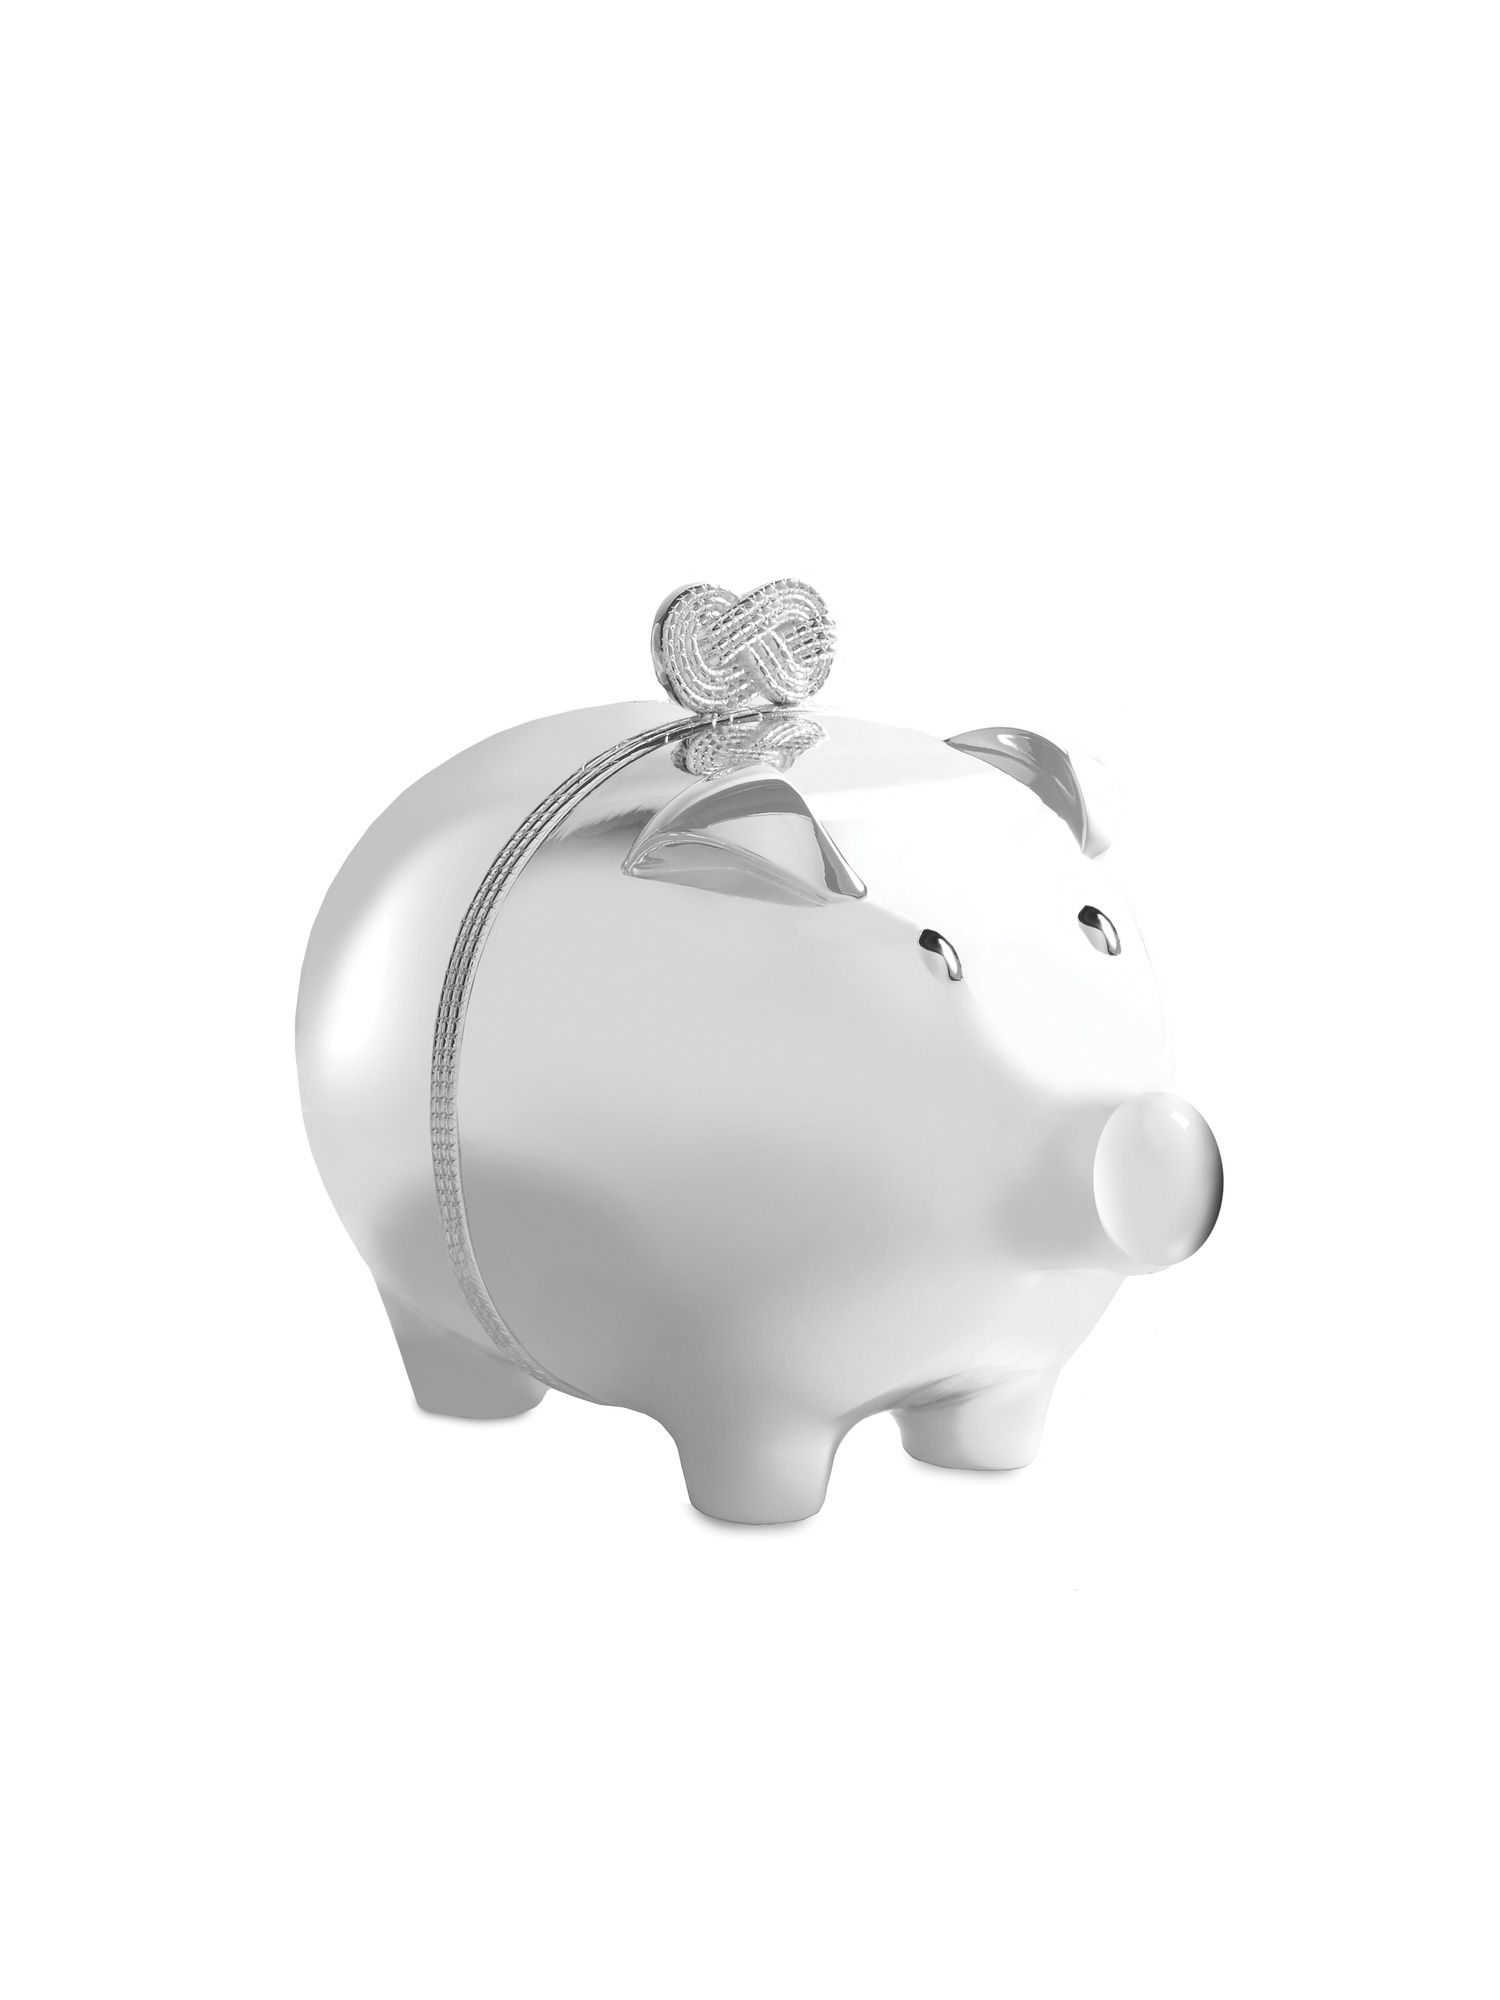 Silver Piggy Bank For Baby Buy Cheap Silver Piggy Bank Compare Equestrian Prices